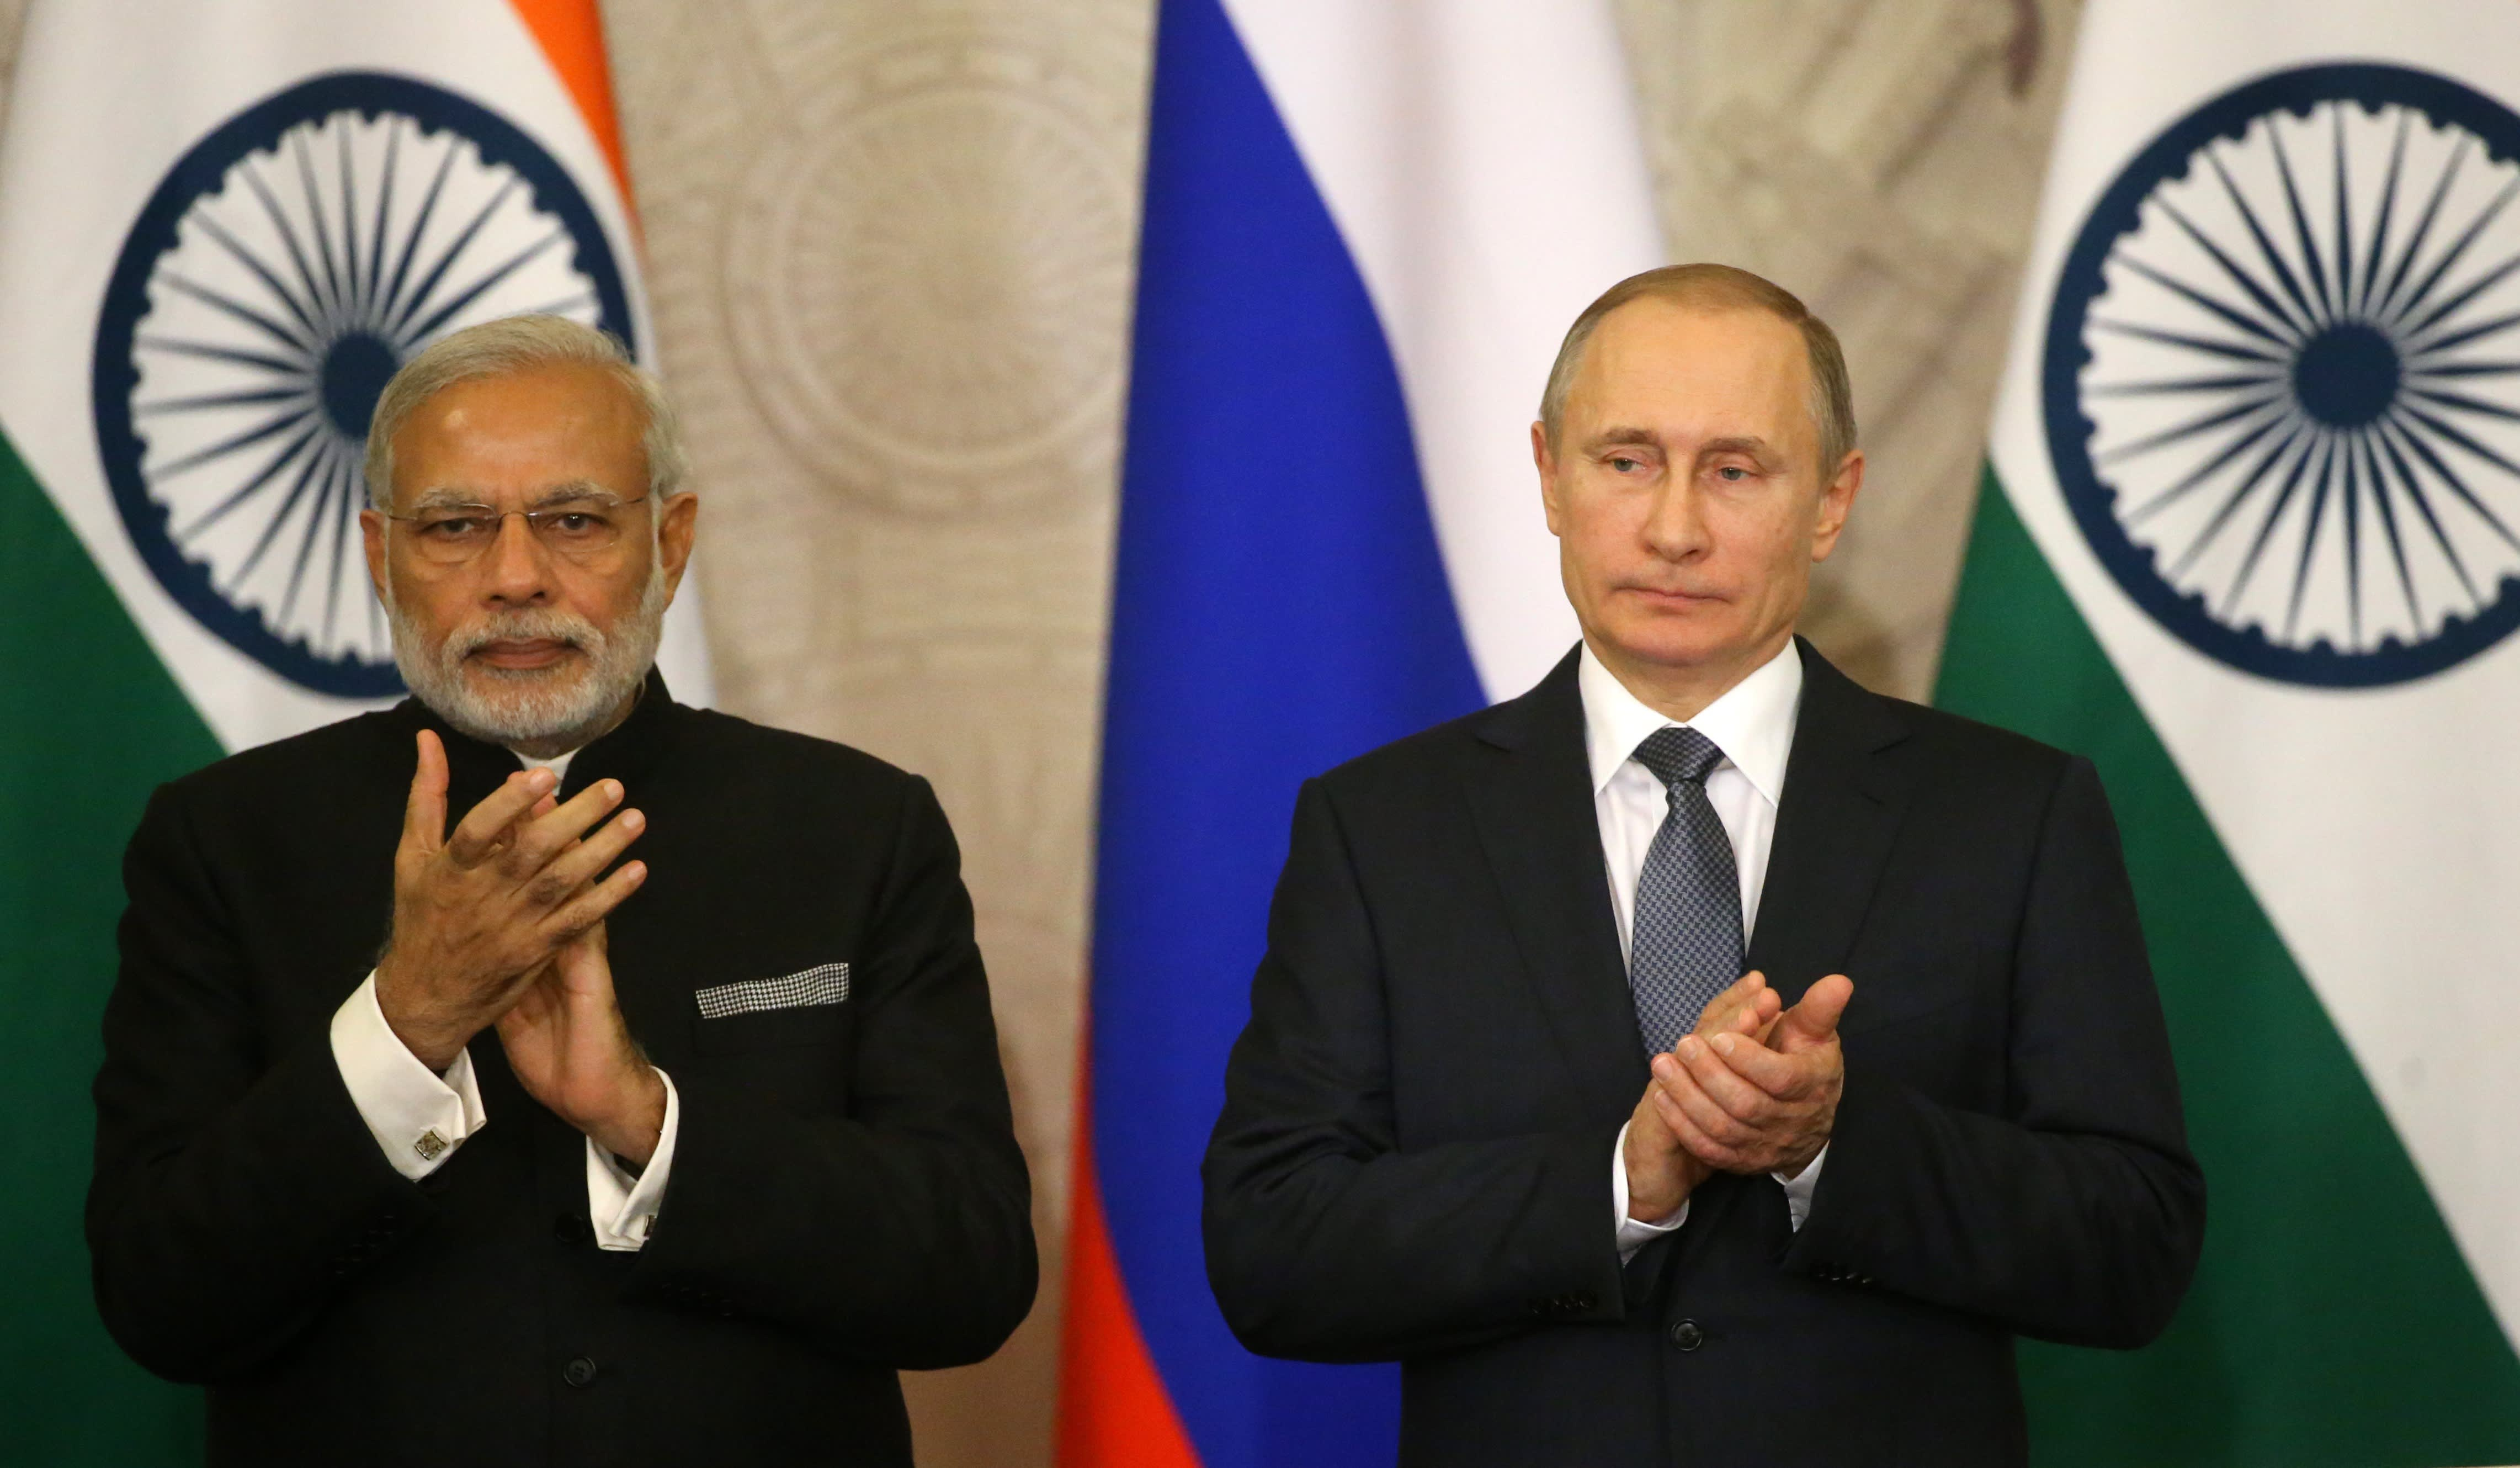 India, facing sanctions for Russian arms deals, says it wants to pivot spending to the US